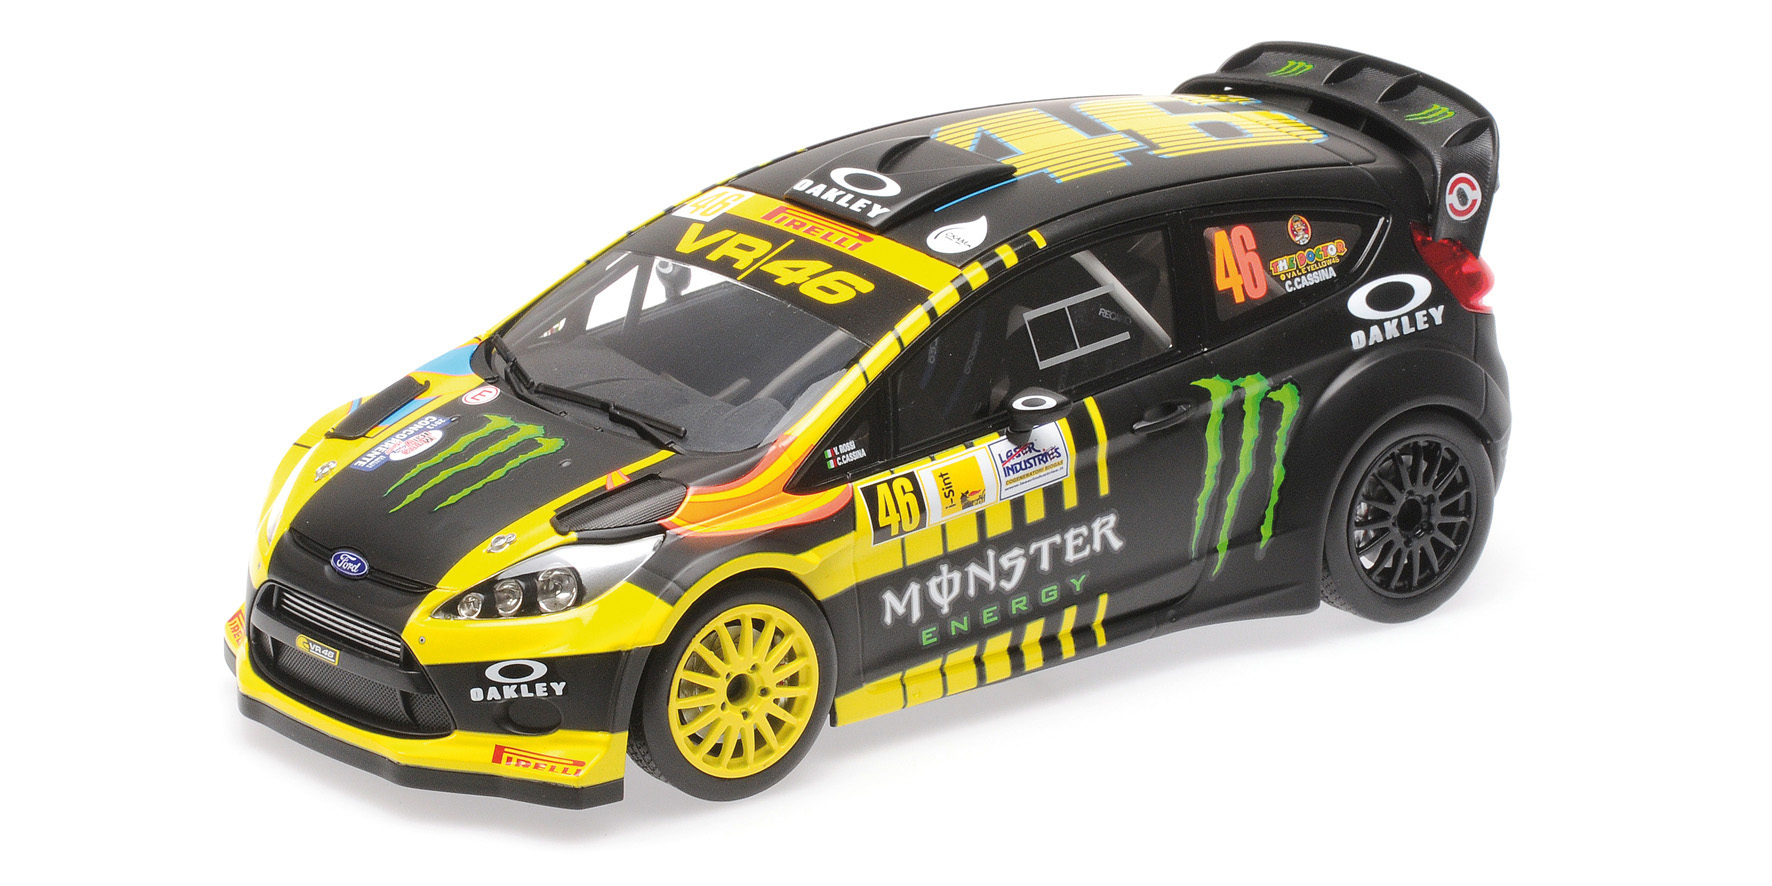 Ford Fiesta RS WRC 2nd Place Monza Rally Show 2013 Rossi/Cassina